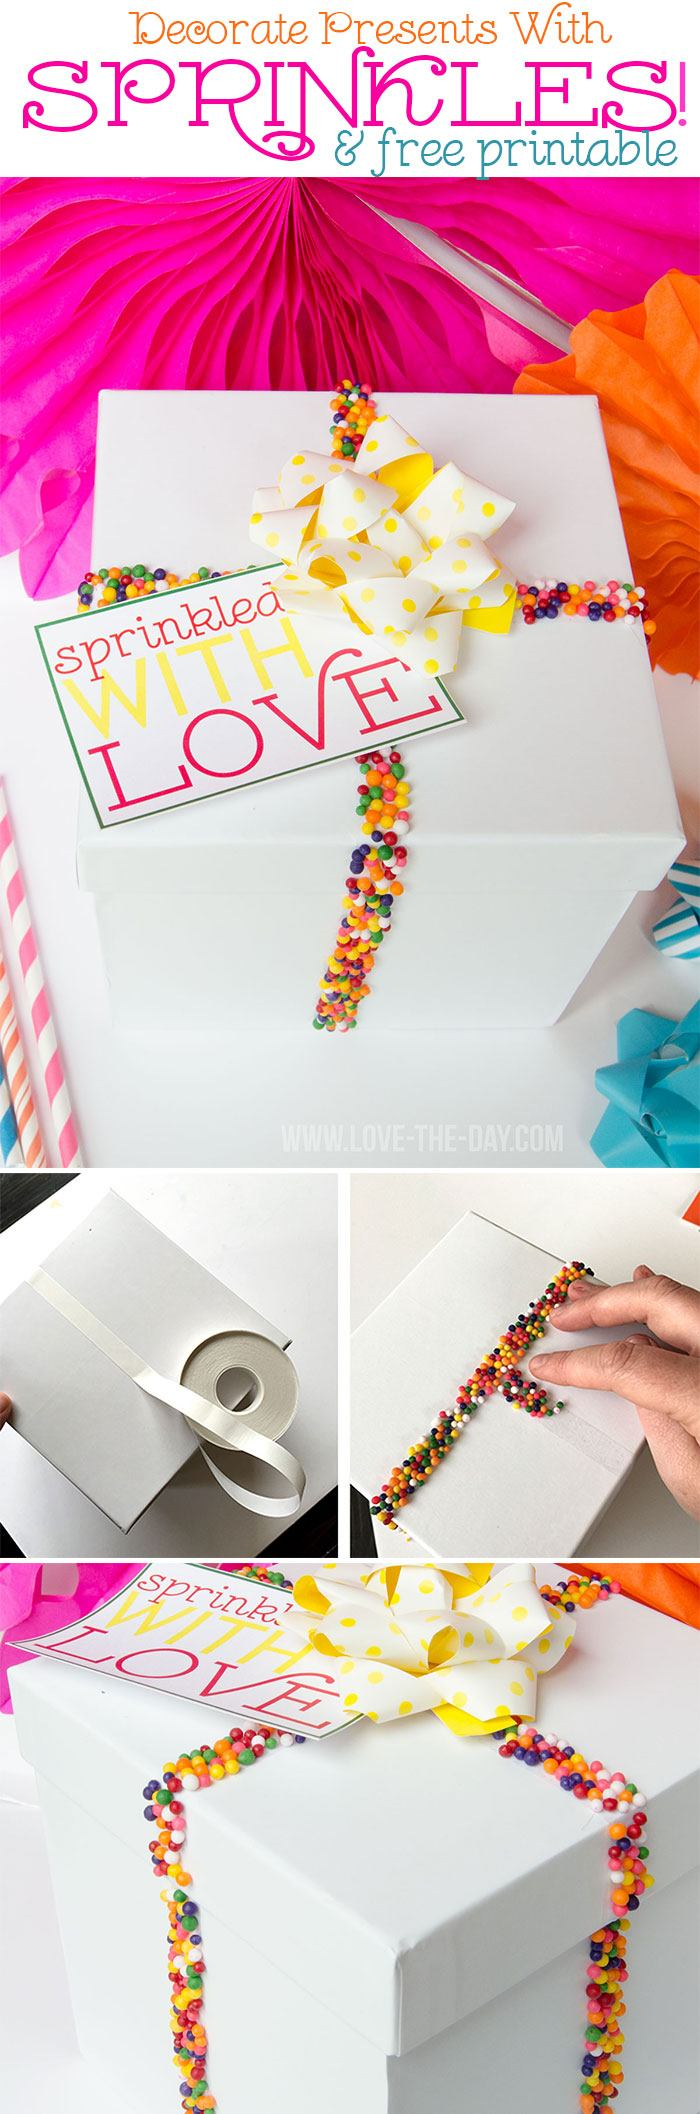 Decorate Presents with Sprinkles|Tutorial & Free Printable by Love They Day